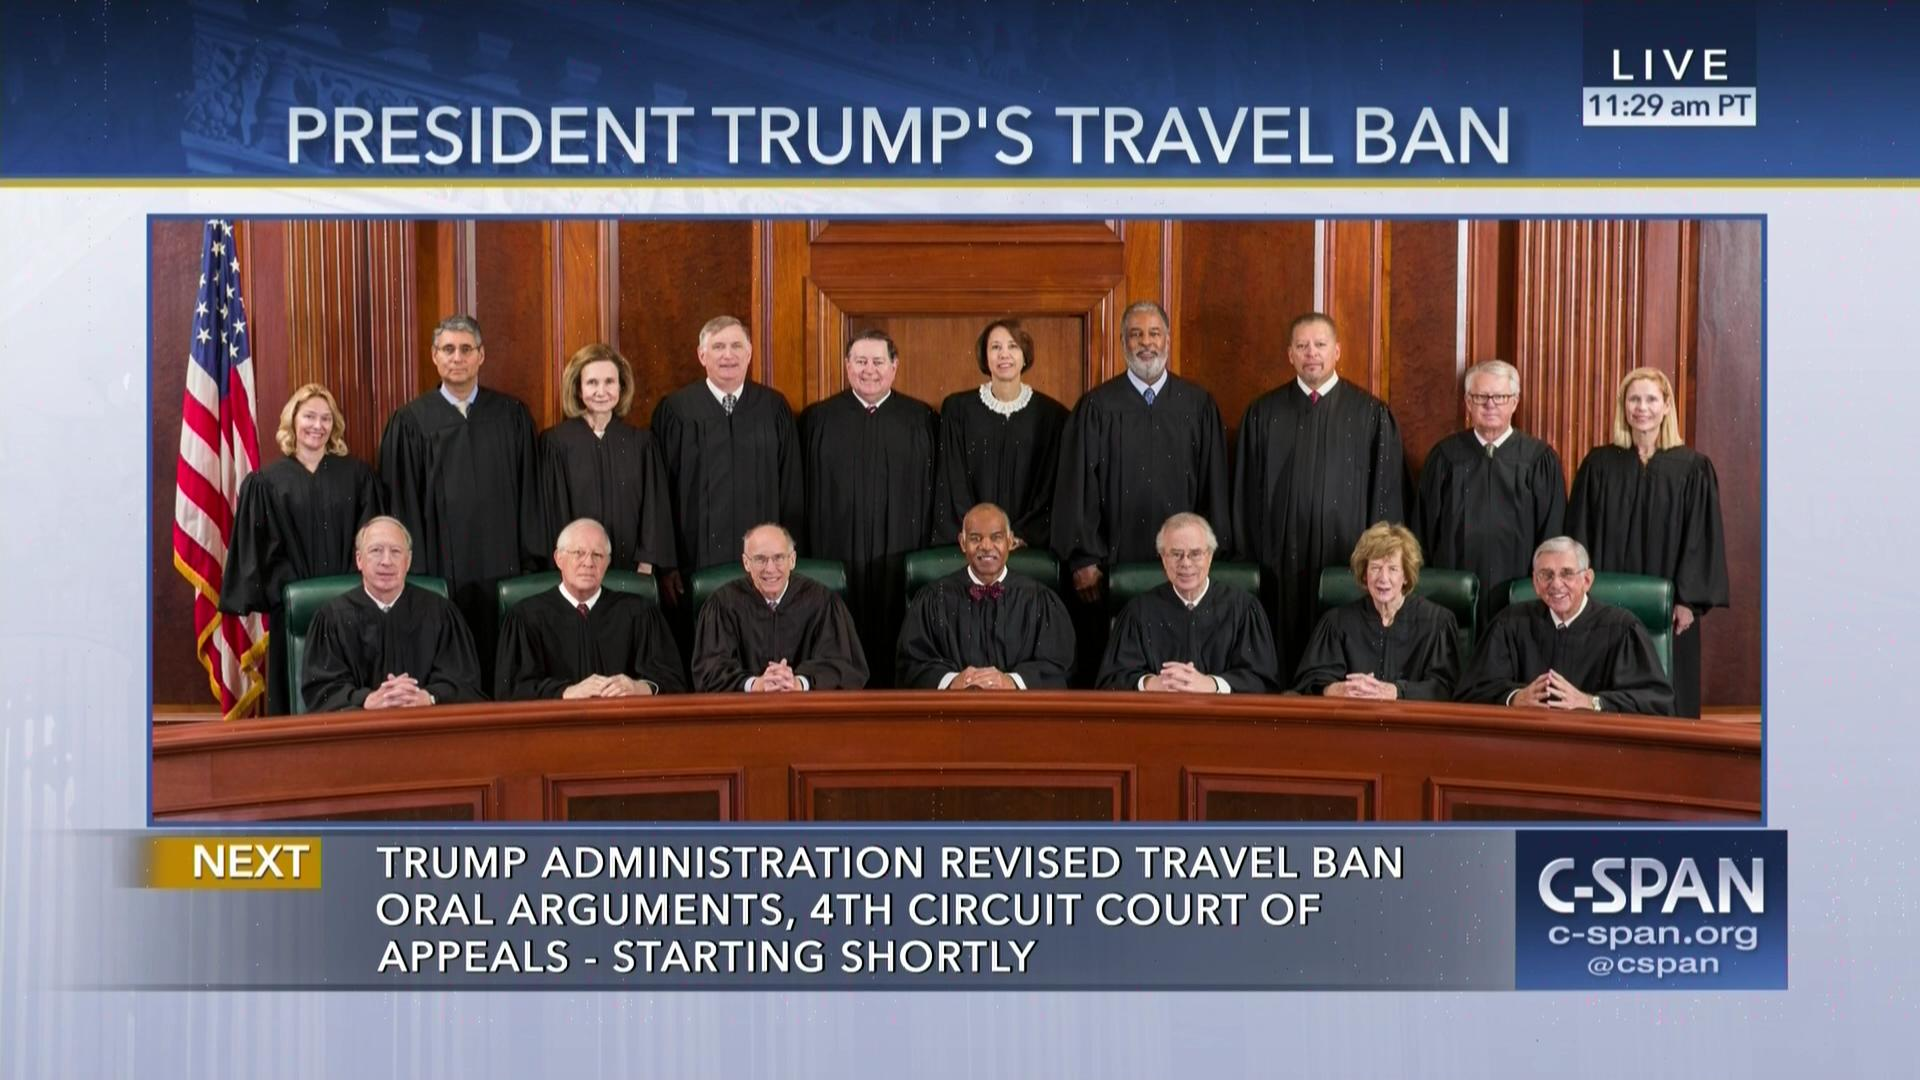 Months Fourth Circuit Court Abwnet Us Of Appeals And District Mapsvg Hears Oral Argument Travel Ban May 8 2017 Video C United States